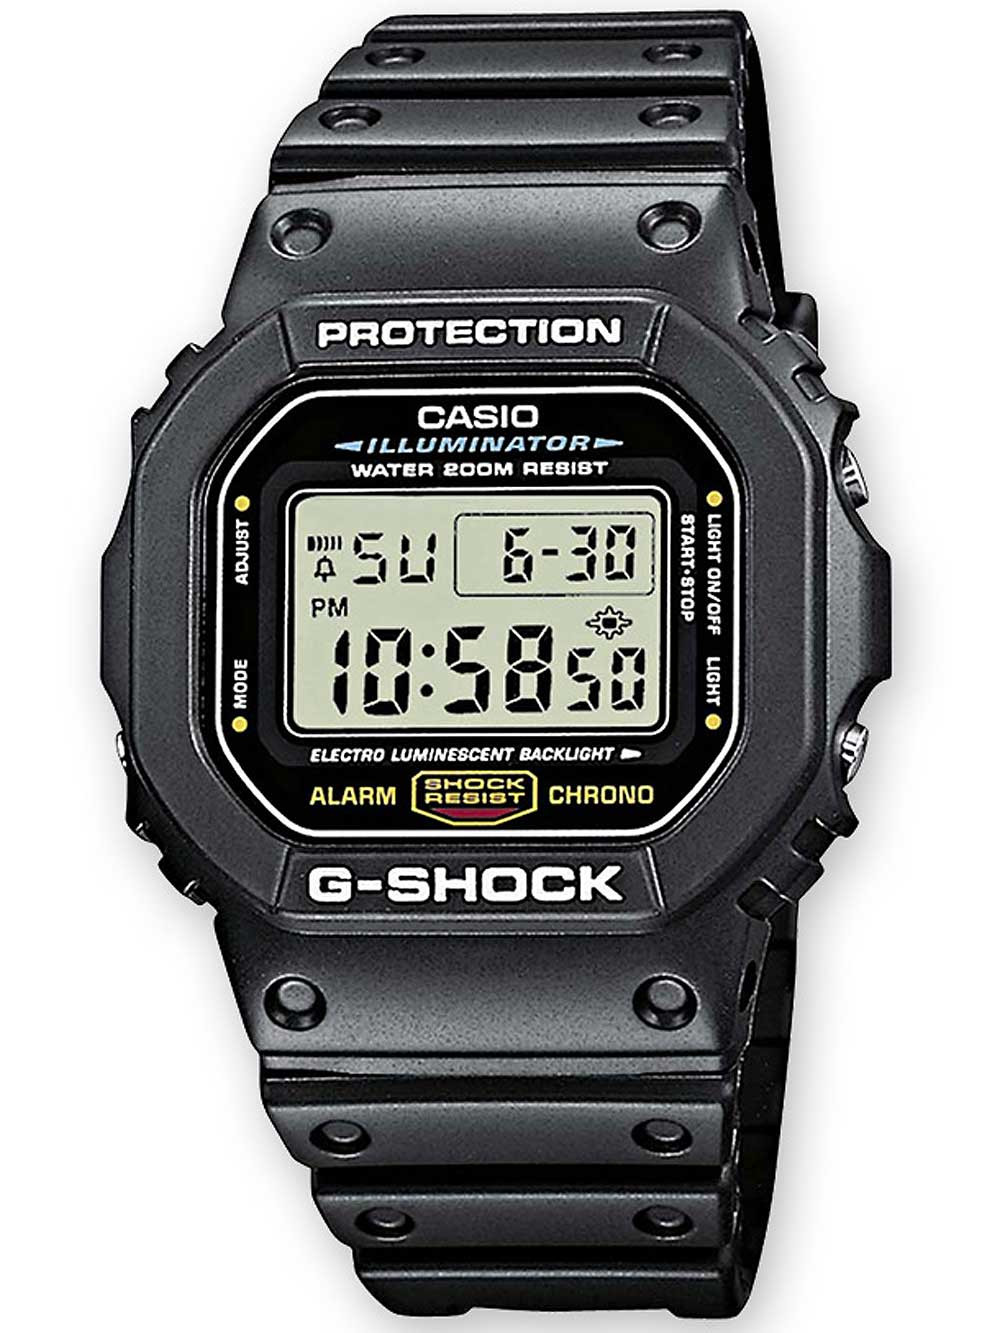 Casio DW-5600E-1VER G-Shock 43mm 20atm